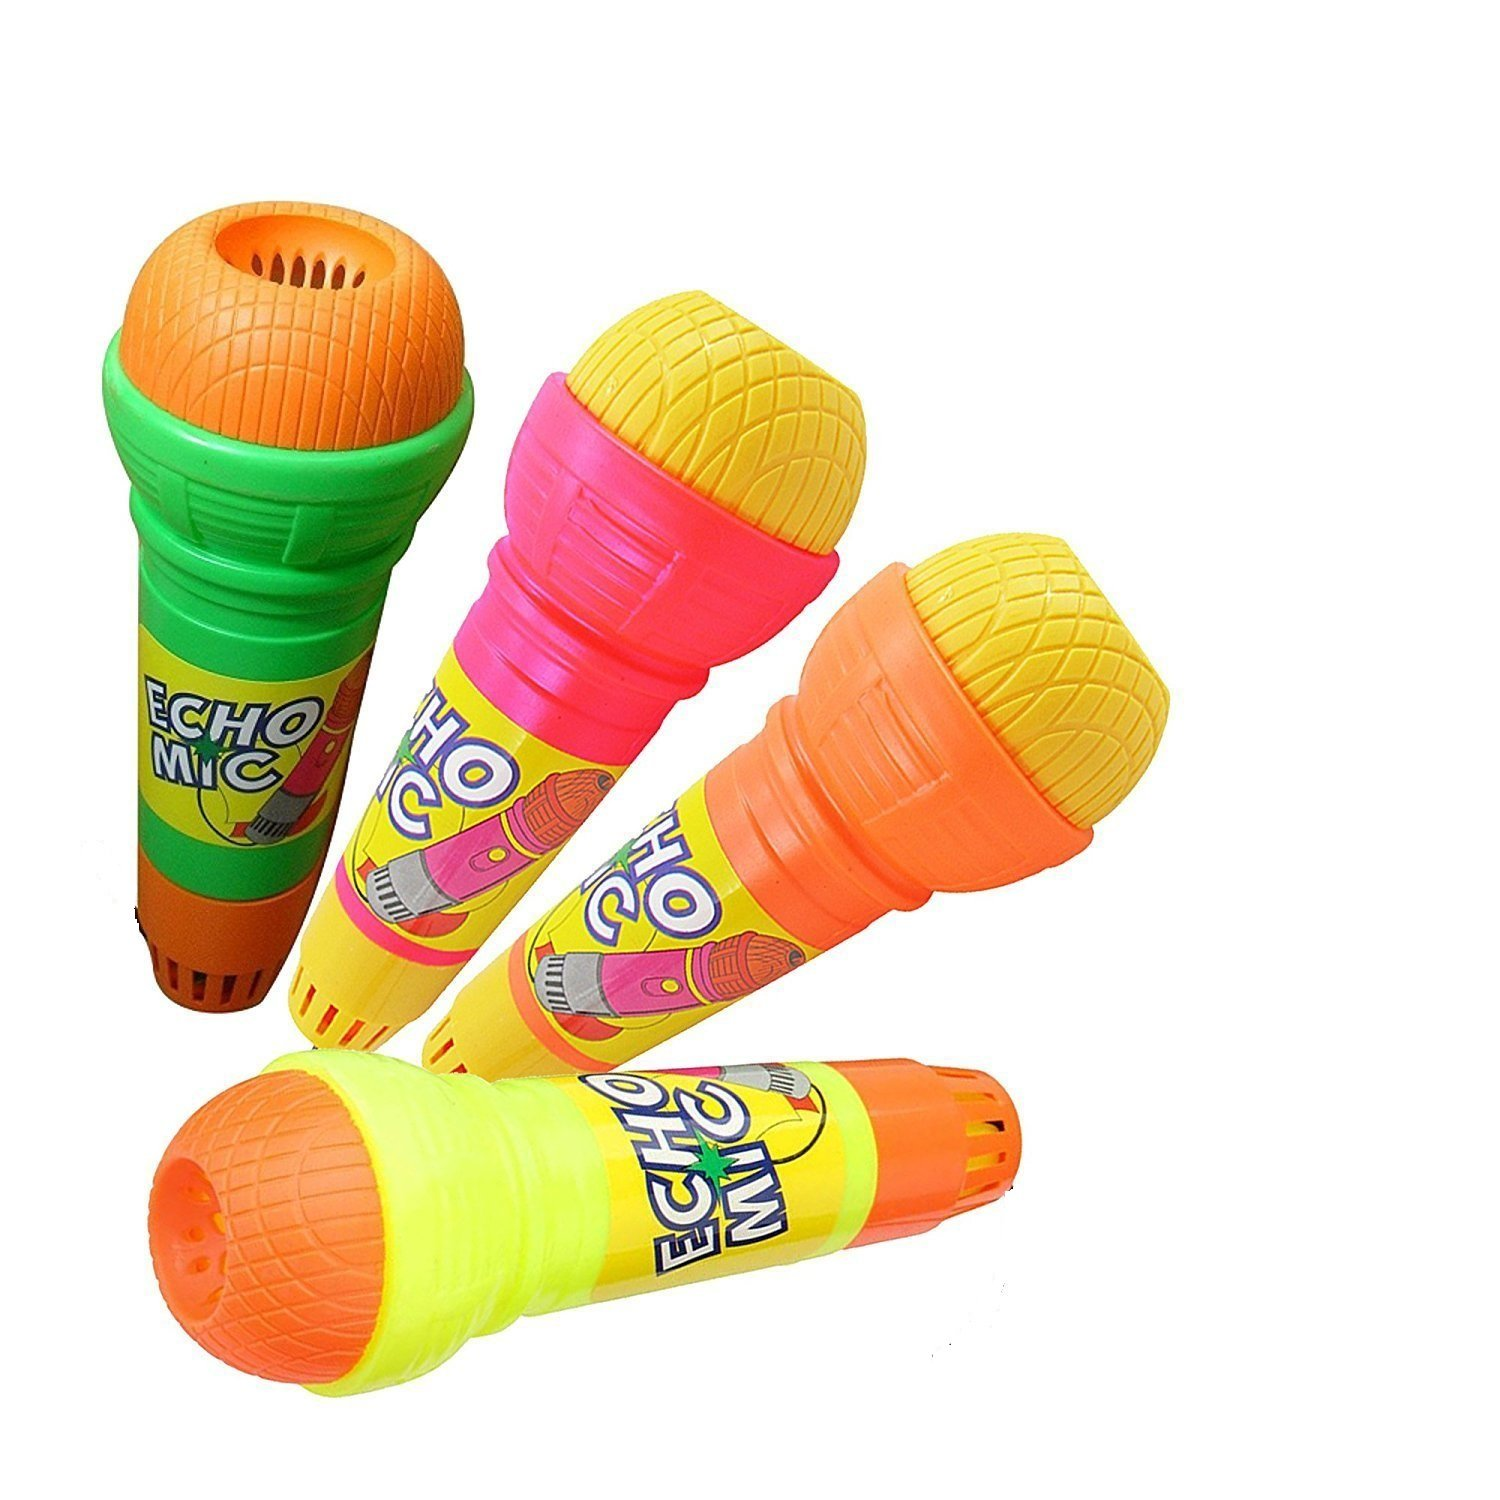 Dazzling Toys Toy Echo Microphone Variety Pack of 12 - Pretend Play Multicolor Novelty Toy Mic. Set with Echo Feature for Kids Graduations | Holidays |Birthday Parties | BBQ's - Ages 3 and Up by Dazzling Toys